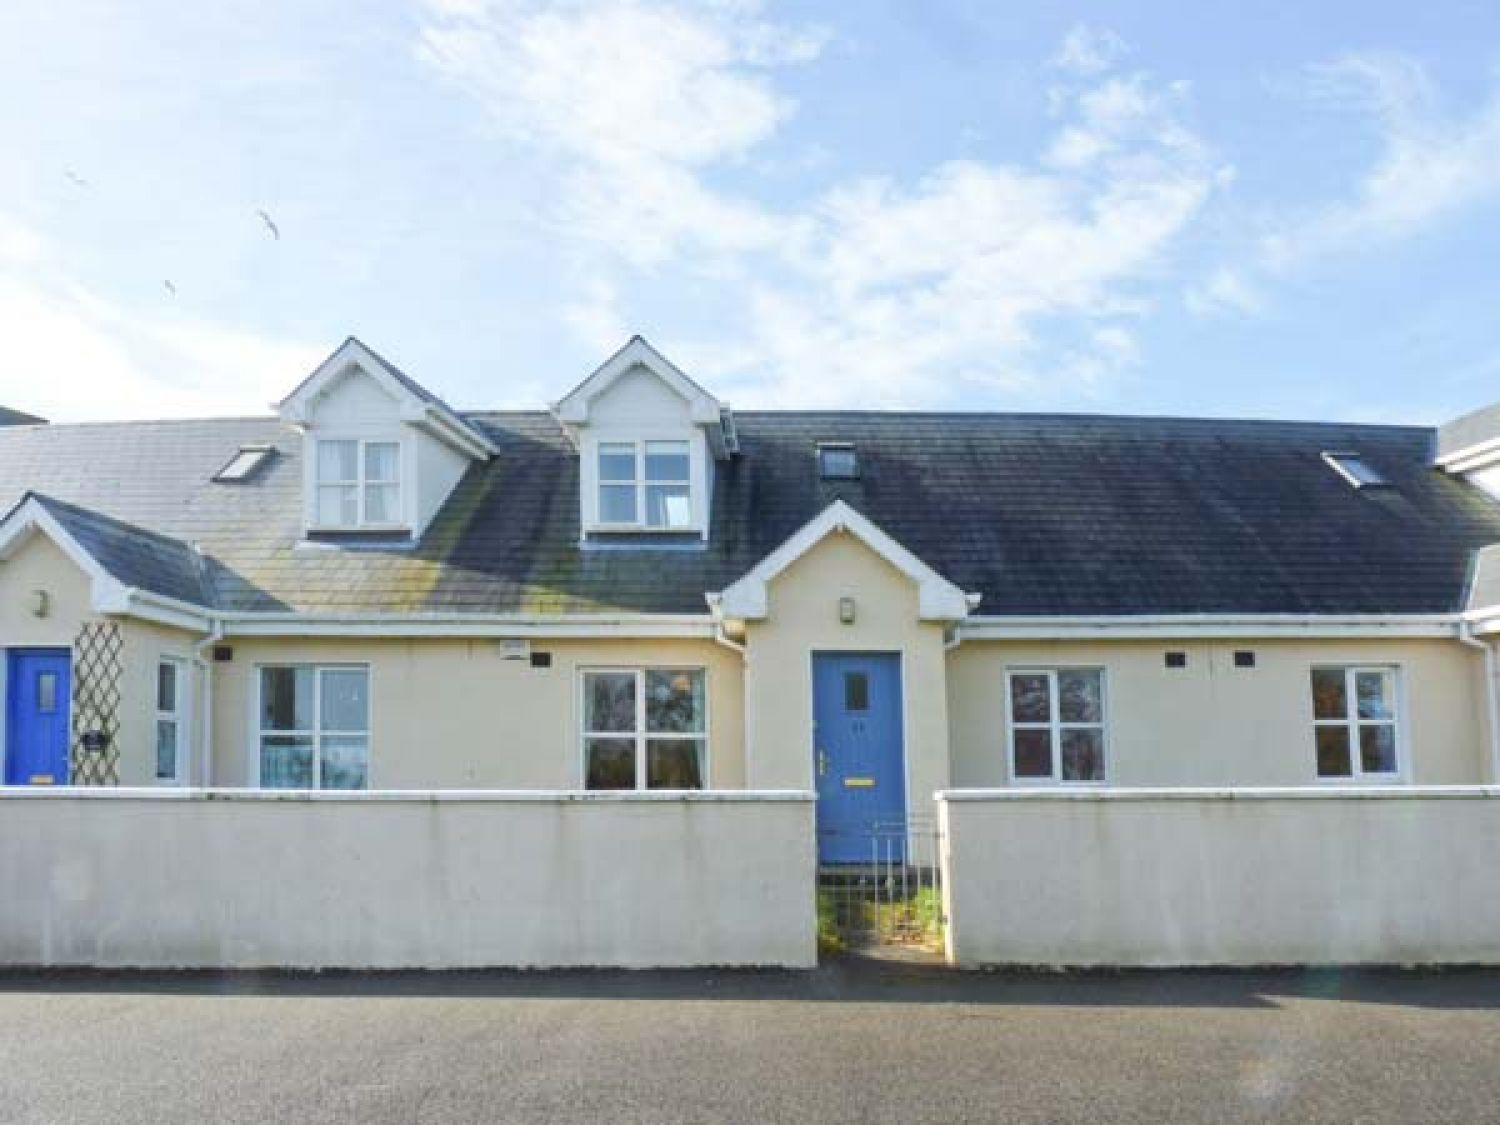 11 Fairway Drive - County Wexford - 923705 - photo 1